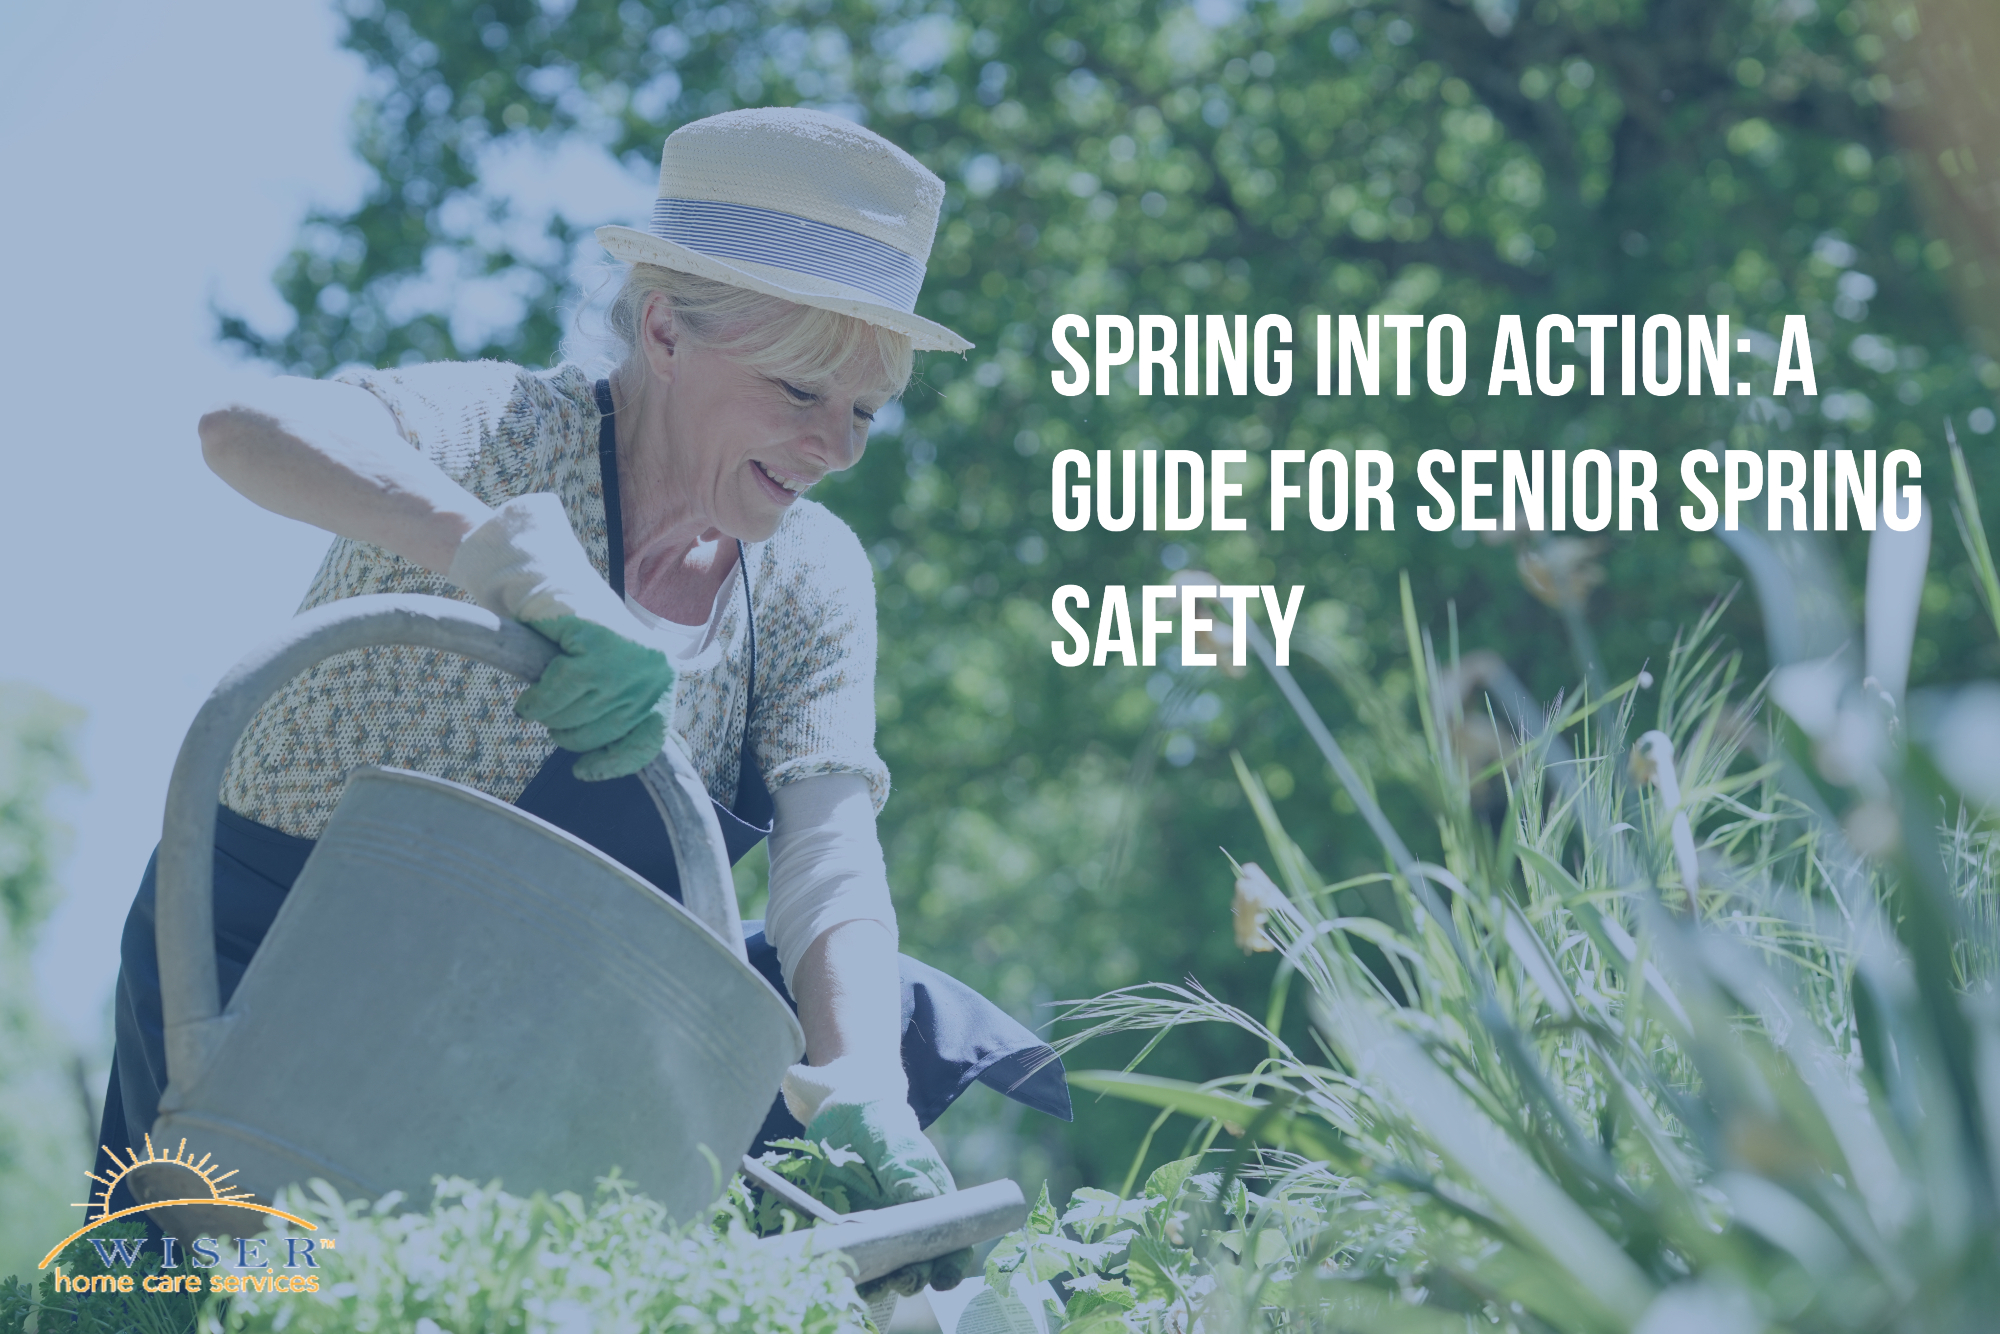 Spring into Action: A Guide for Senior Spring Safety